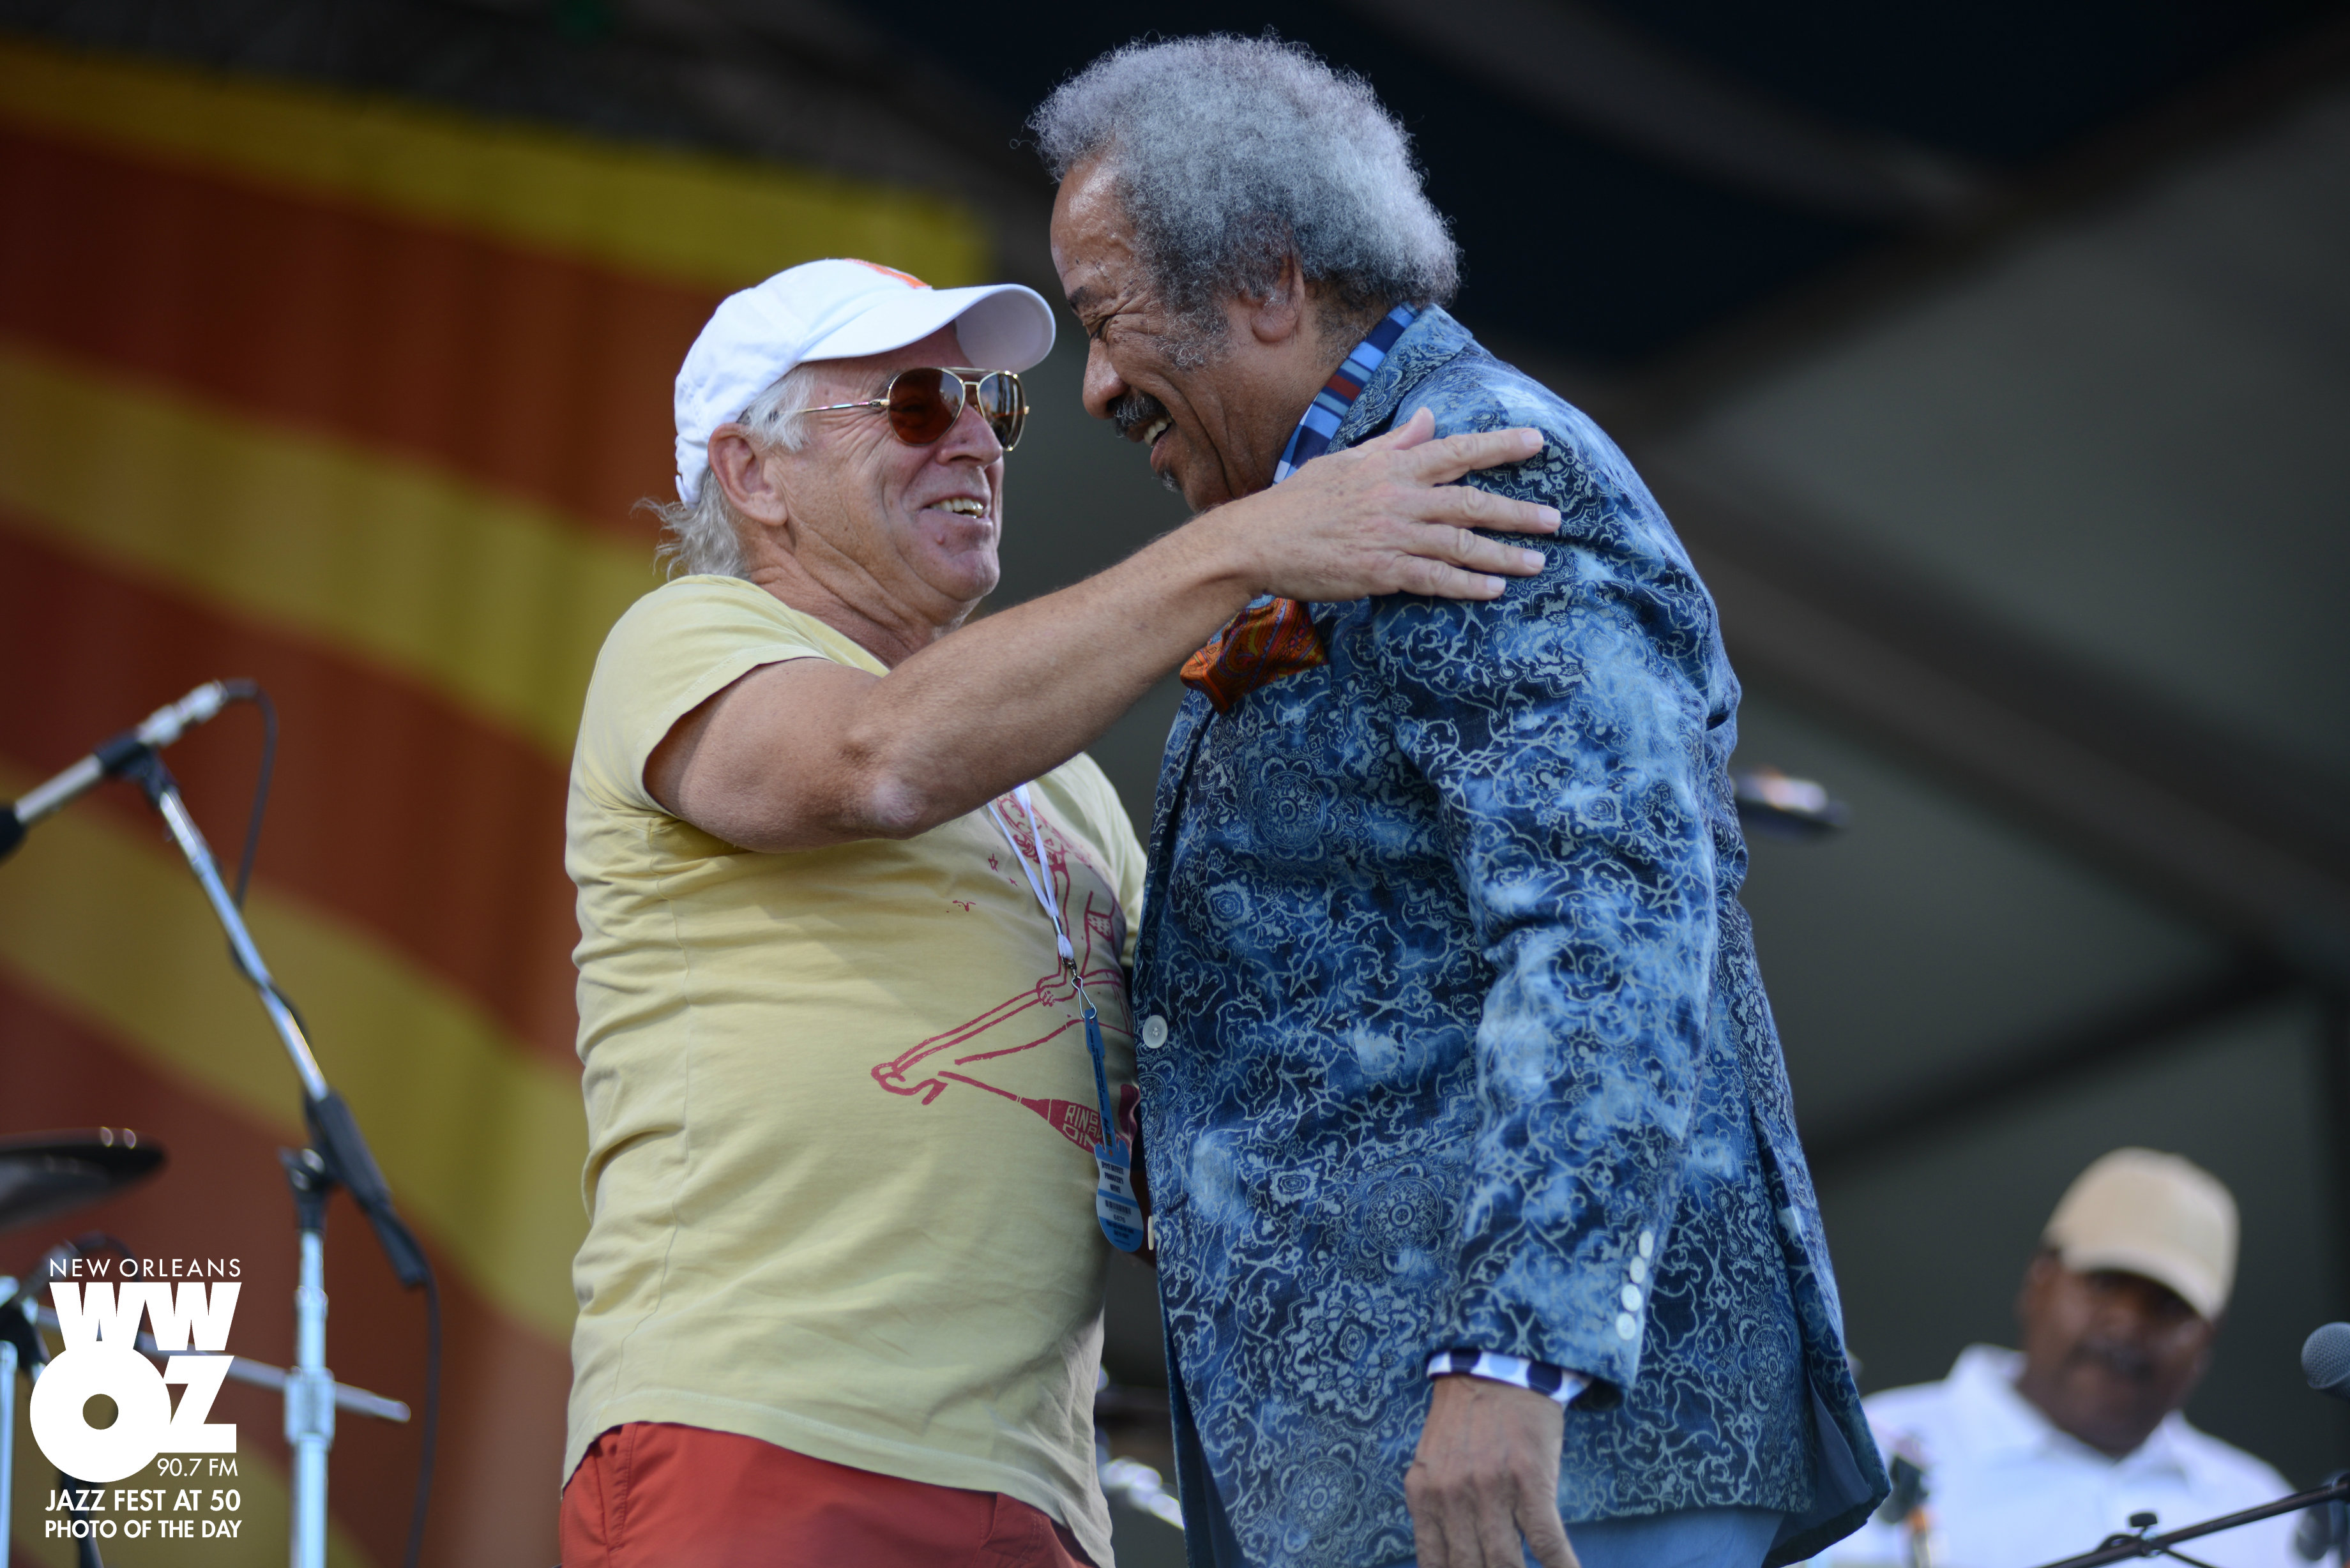 Jimmy Buffett and Allen Toussaint: Jazz Fest at 50 Photo of the Day